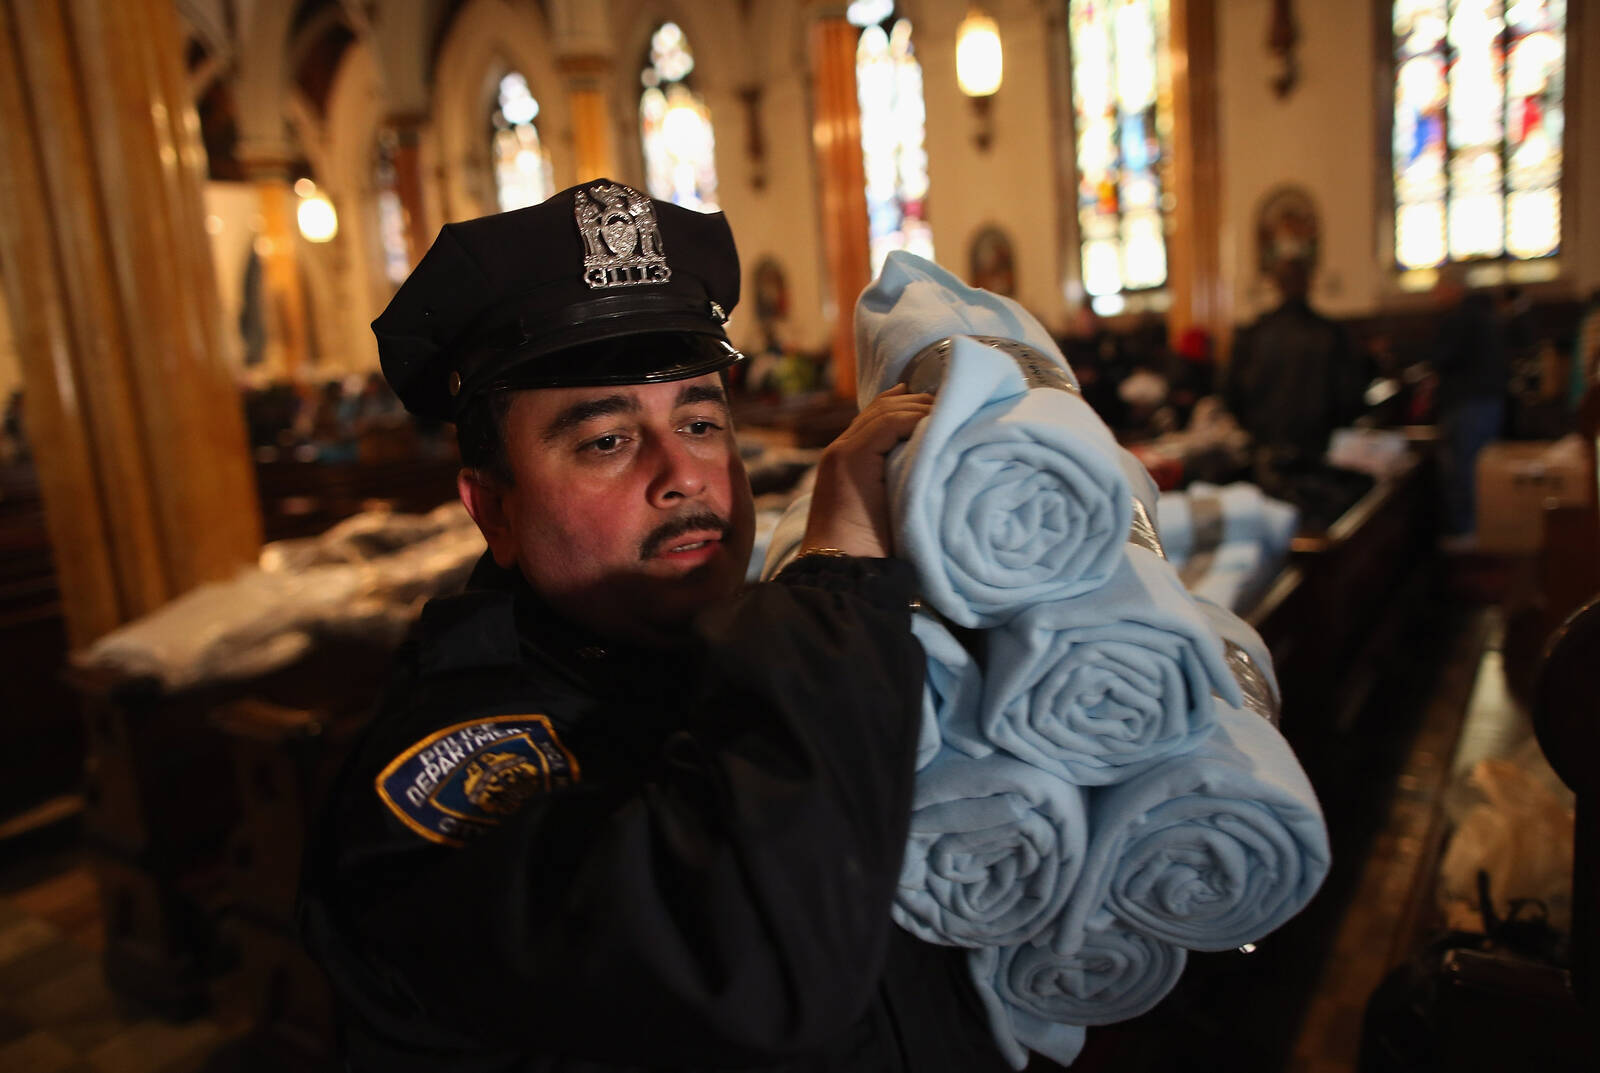 A policeman carries blankets for people affected by Superstorm Sandy on November 8, 2012 in the Brooklyn borough of New York City. Credit: John Moore/Getty Images